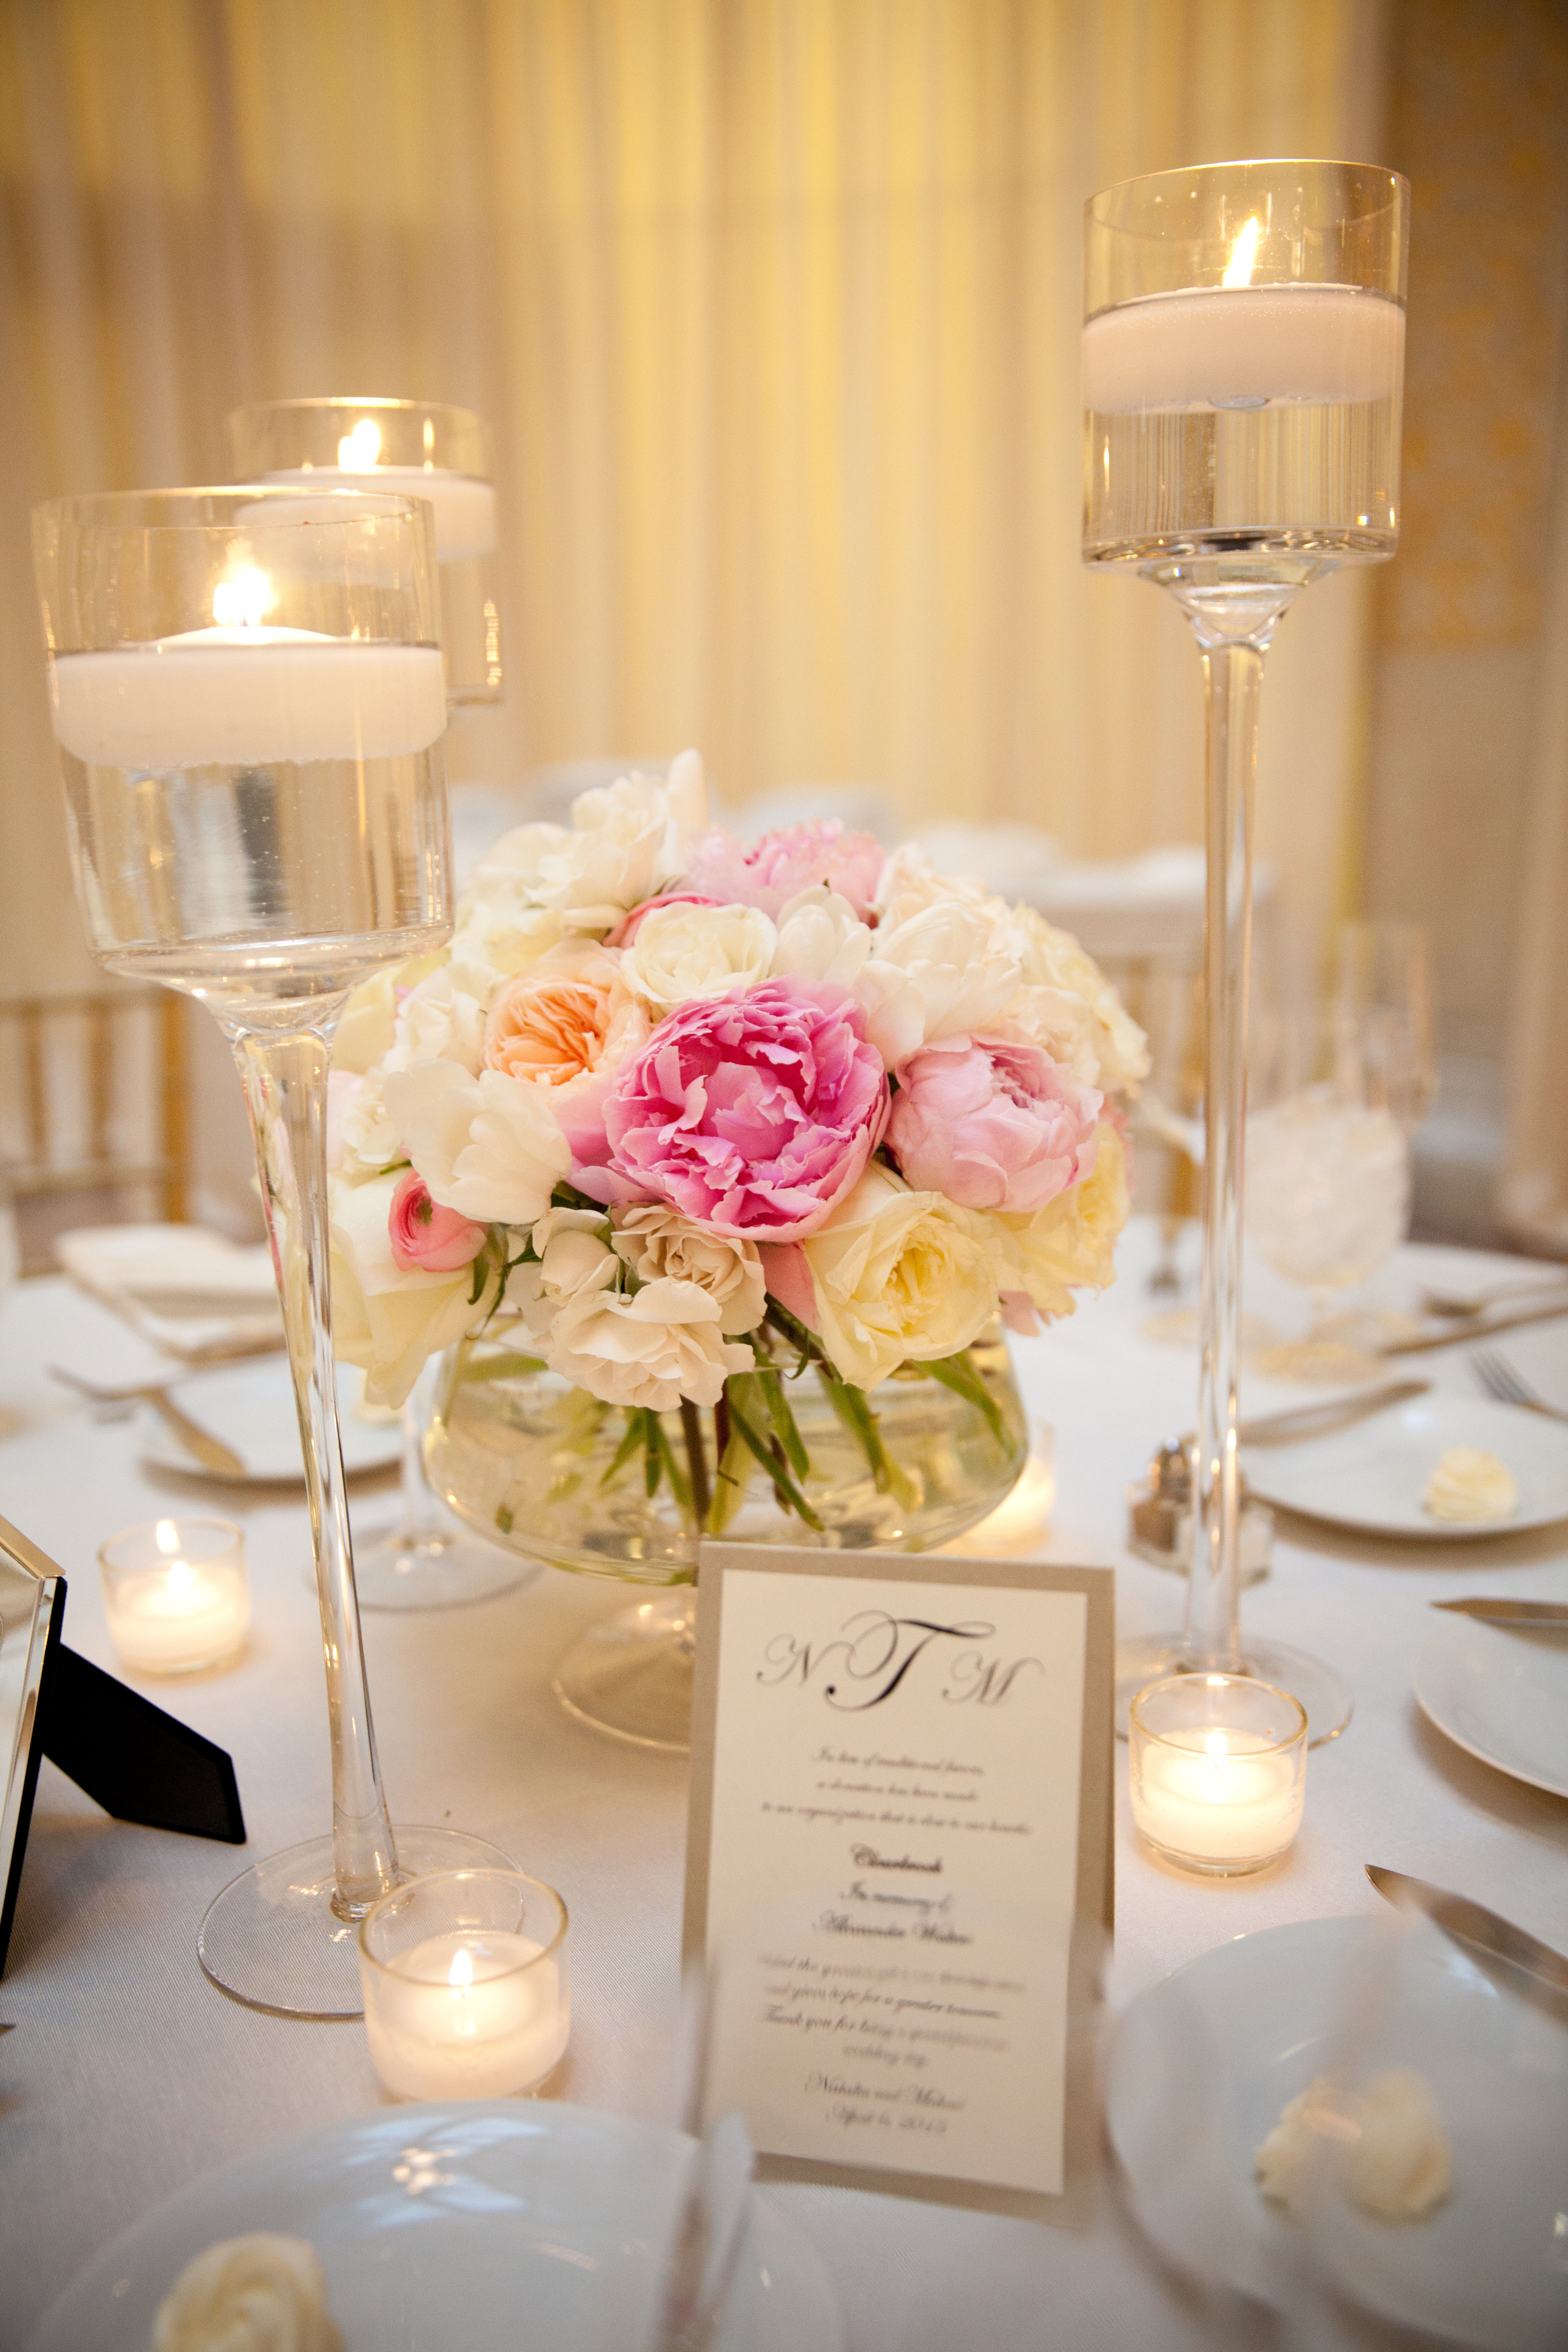 Flowers & Decor, Real Weddings, Wedding Style, pink, Centerpieces, Candles, Spring Weddings, City Real Weddings, Classic Real Weddings, Midwest Real Weddings, Spring Real Weddings, City Weddings, Classic Wedding Flowers & Decor, Spring Wedding Flowers & Decor, Peony, Candlelight